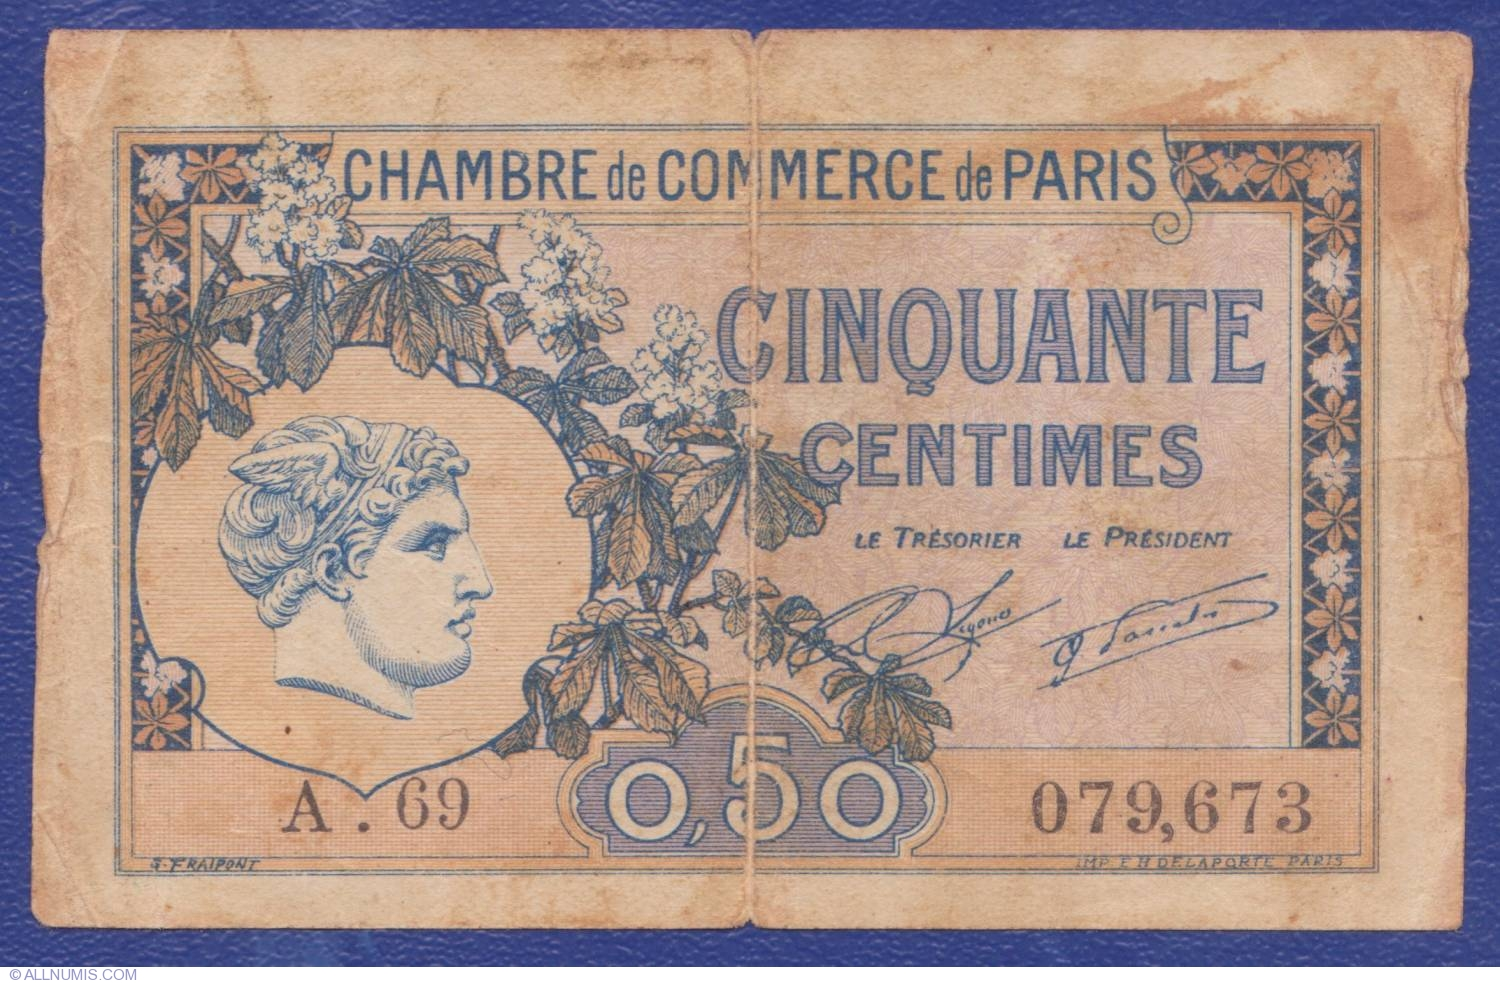 50 centimes 1920 paris chambre de commerce france for Chambre de commerce biarritz